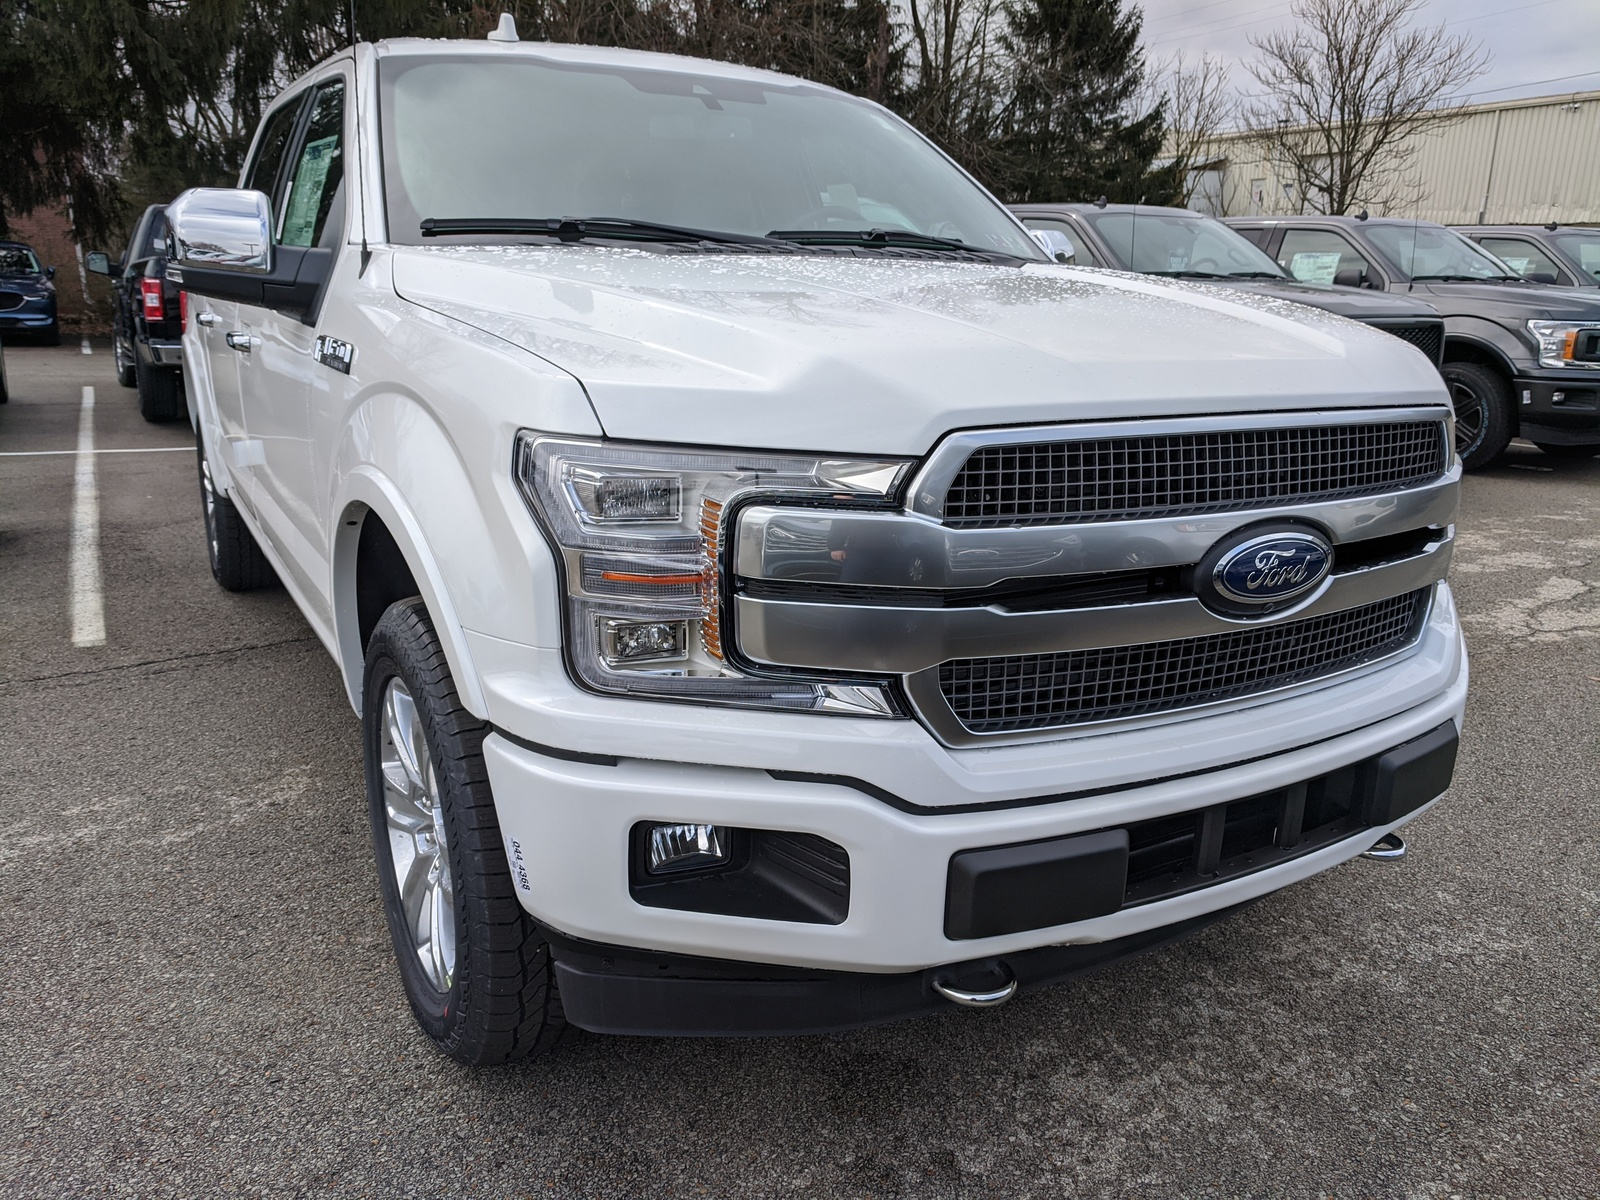 New 2020 Ford F 150 Platinum Crew Cab Pickup In Star White